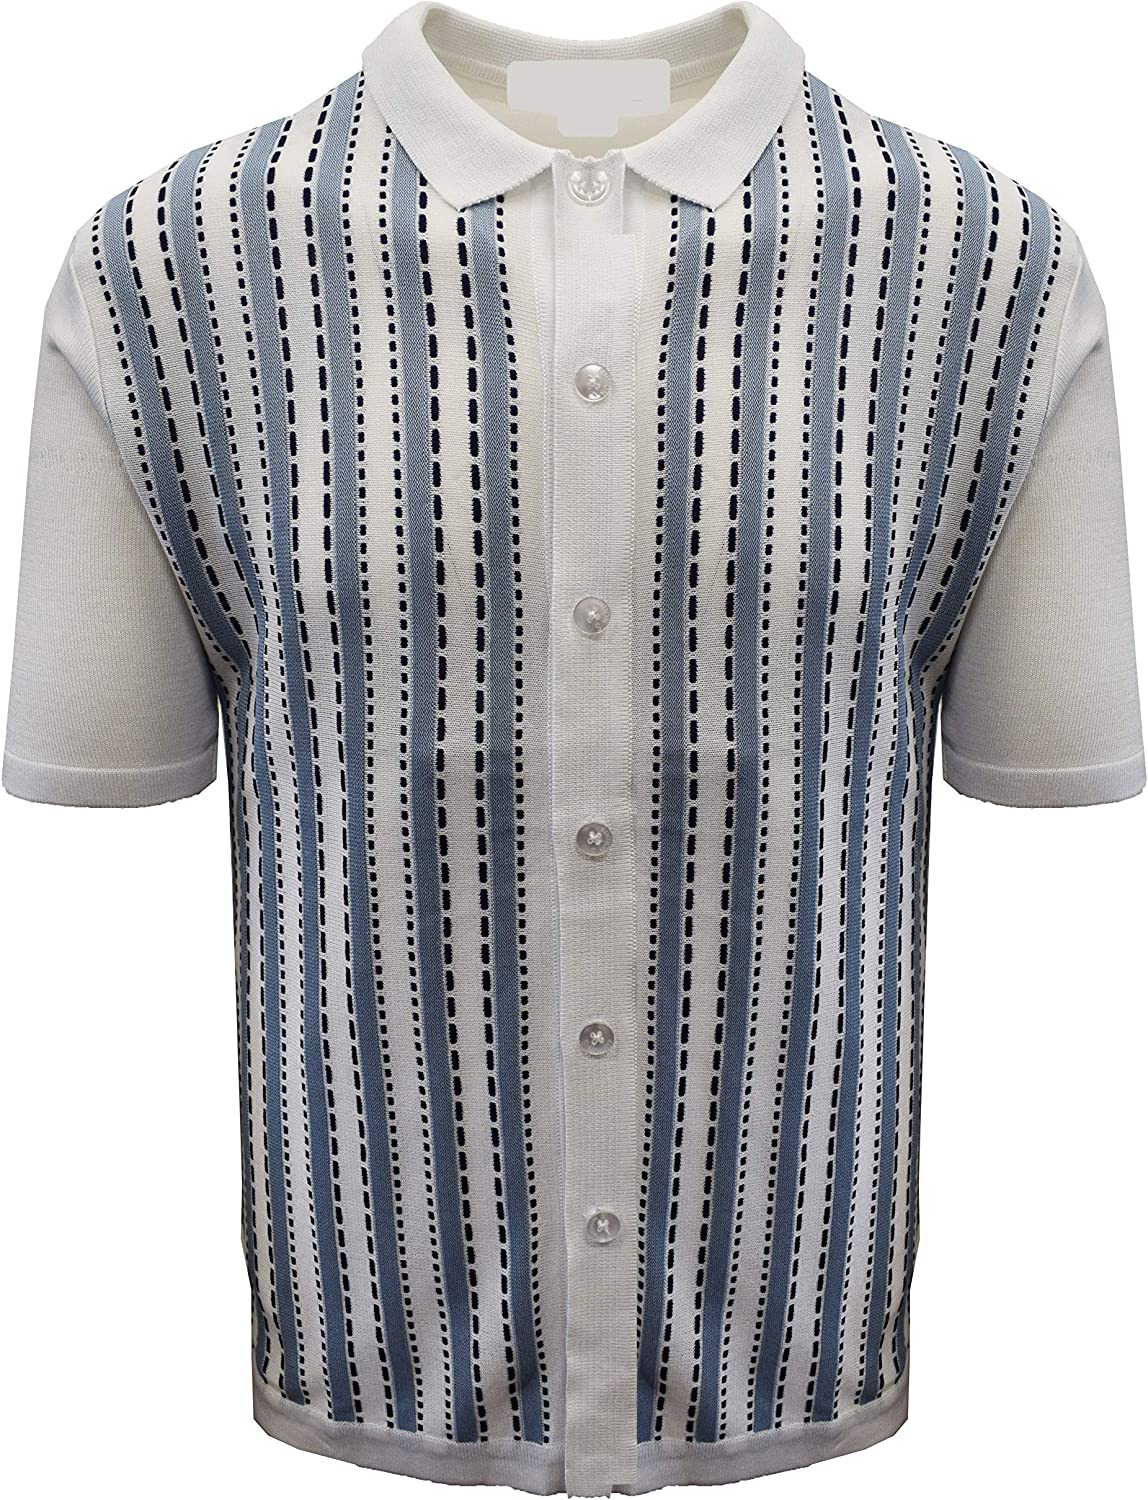 SAFIRE SILK INC. Edition-S Men's Short Sleeve Knit Shirt- Vertical Line with Saddle Stitch Accents